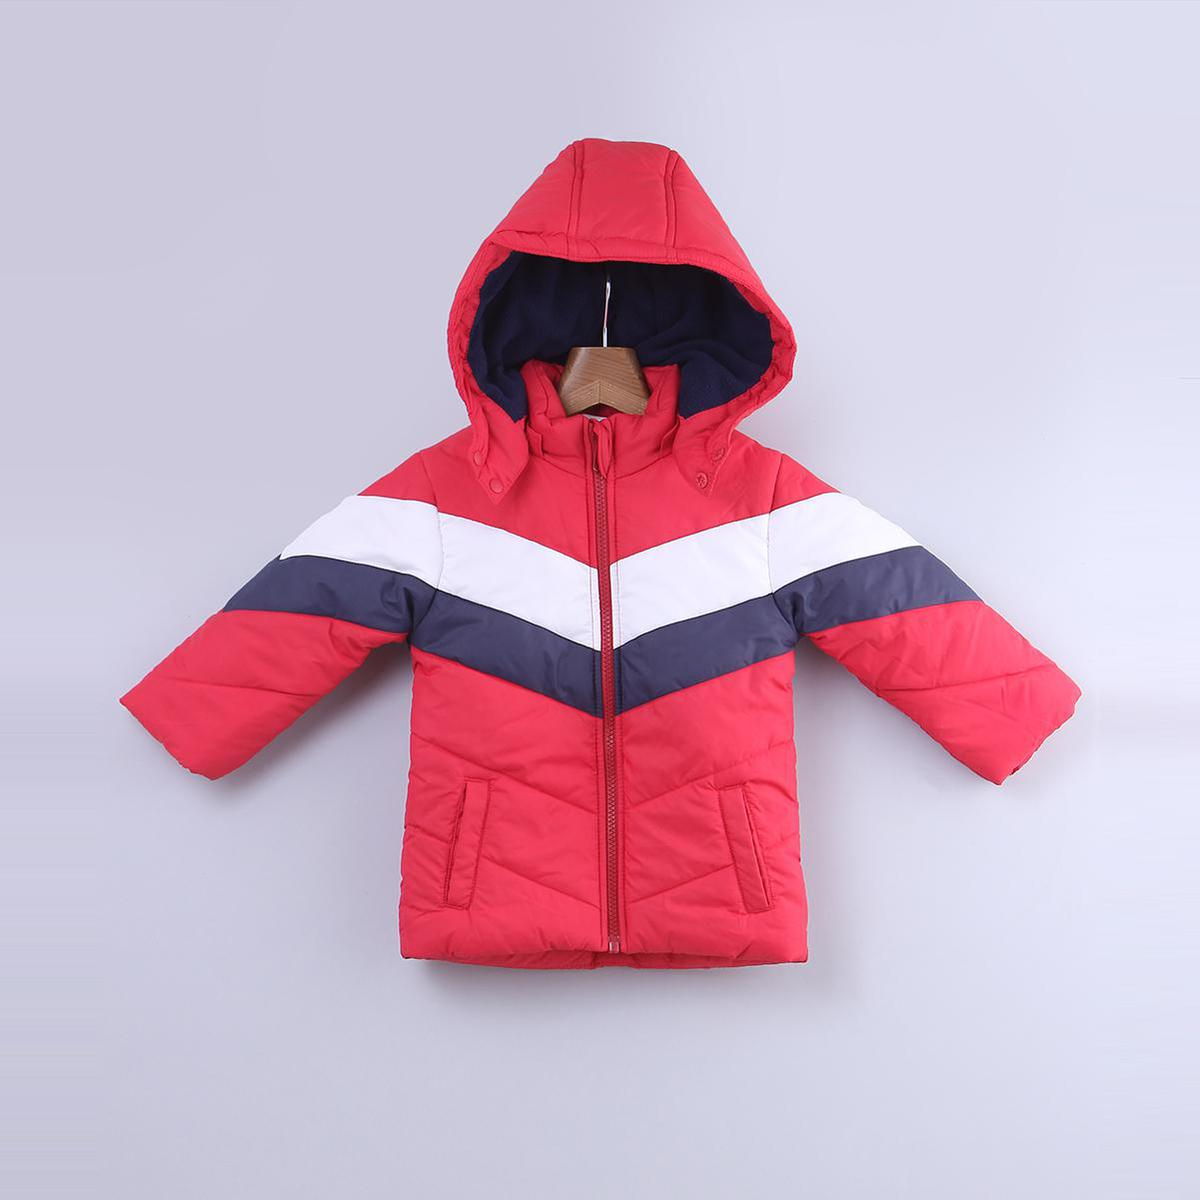 Beebay - Red Colored Block Polyester Jacket For Kids Boys